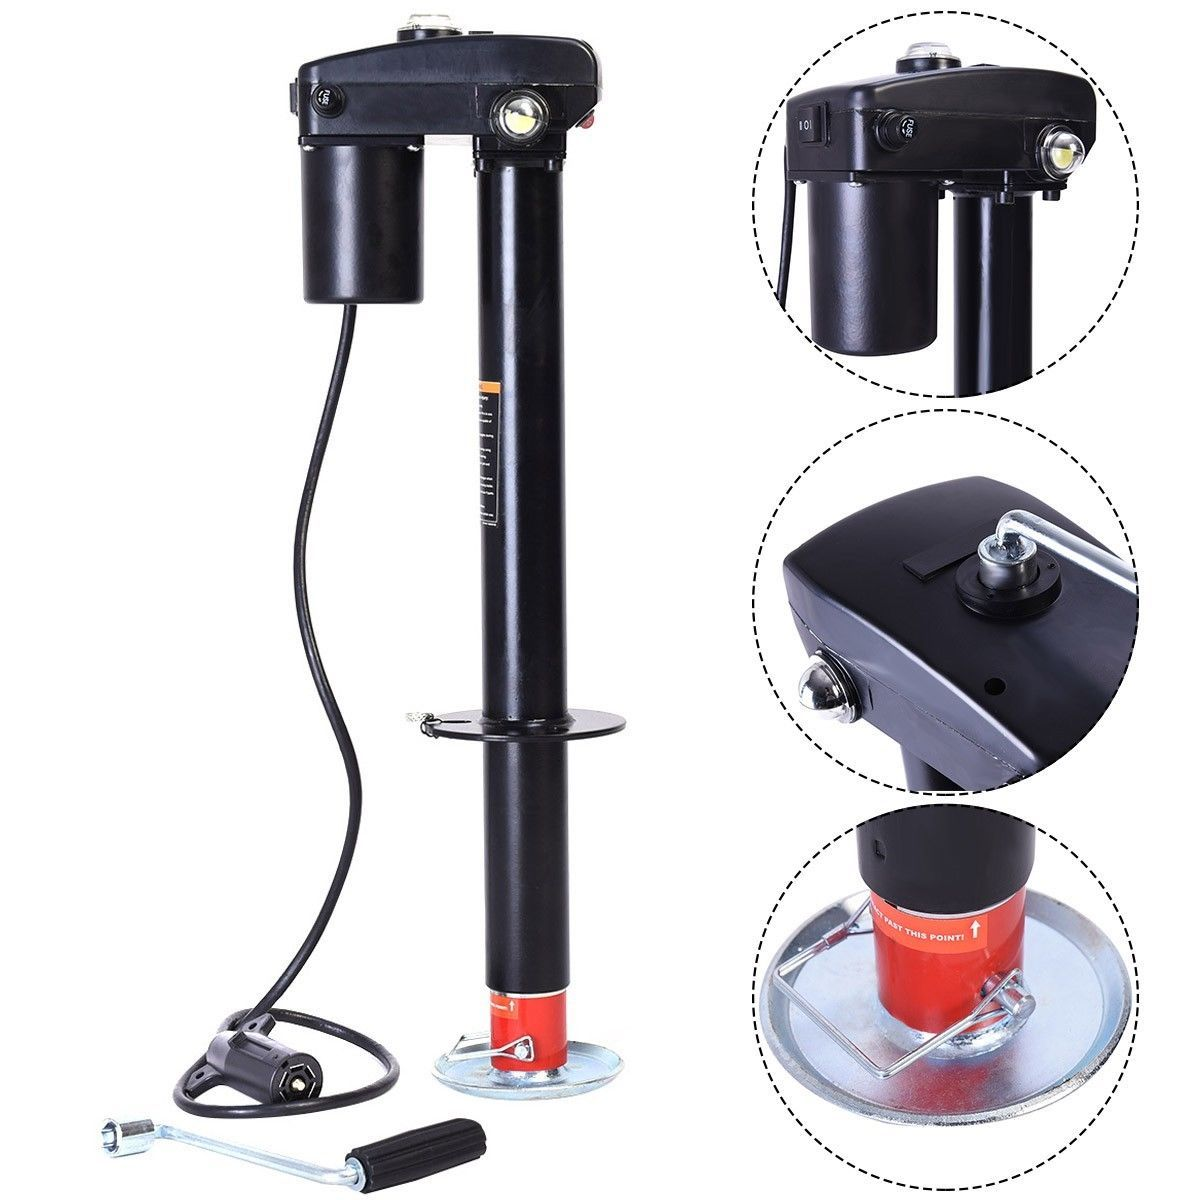 Details about 3500 lbs Electric Power Tongue Jack RV Boat